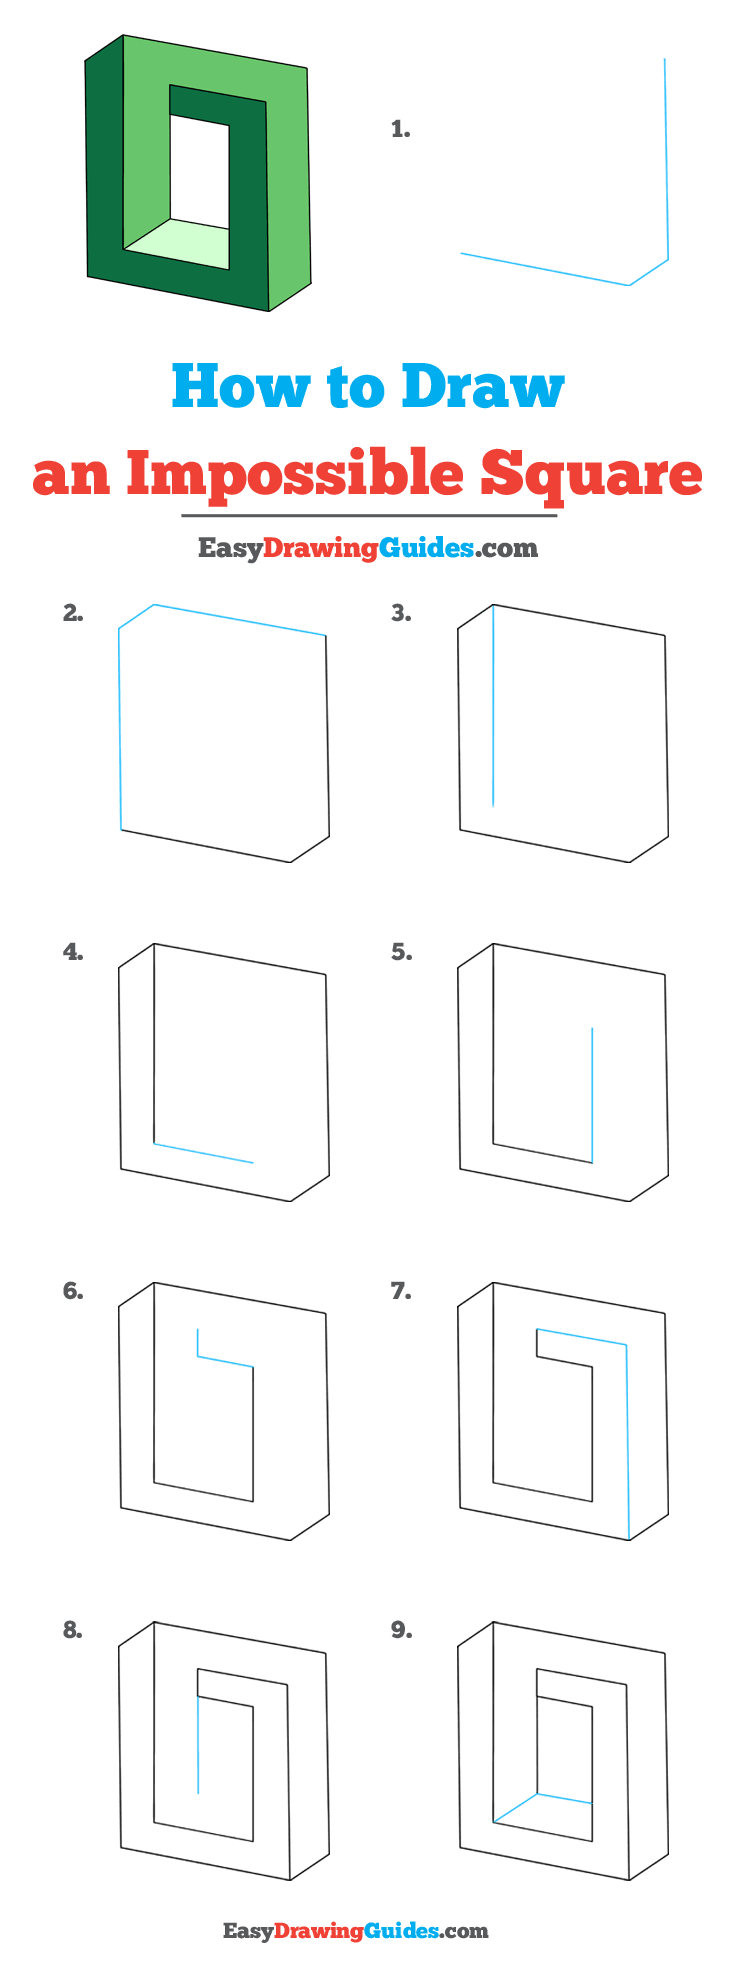 How to Draw Impossible Square